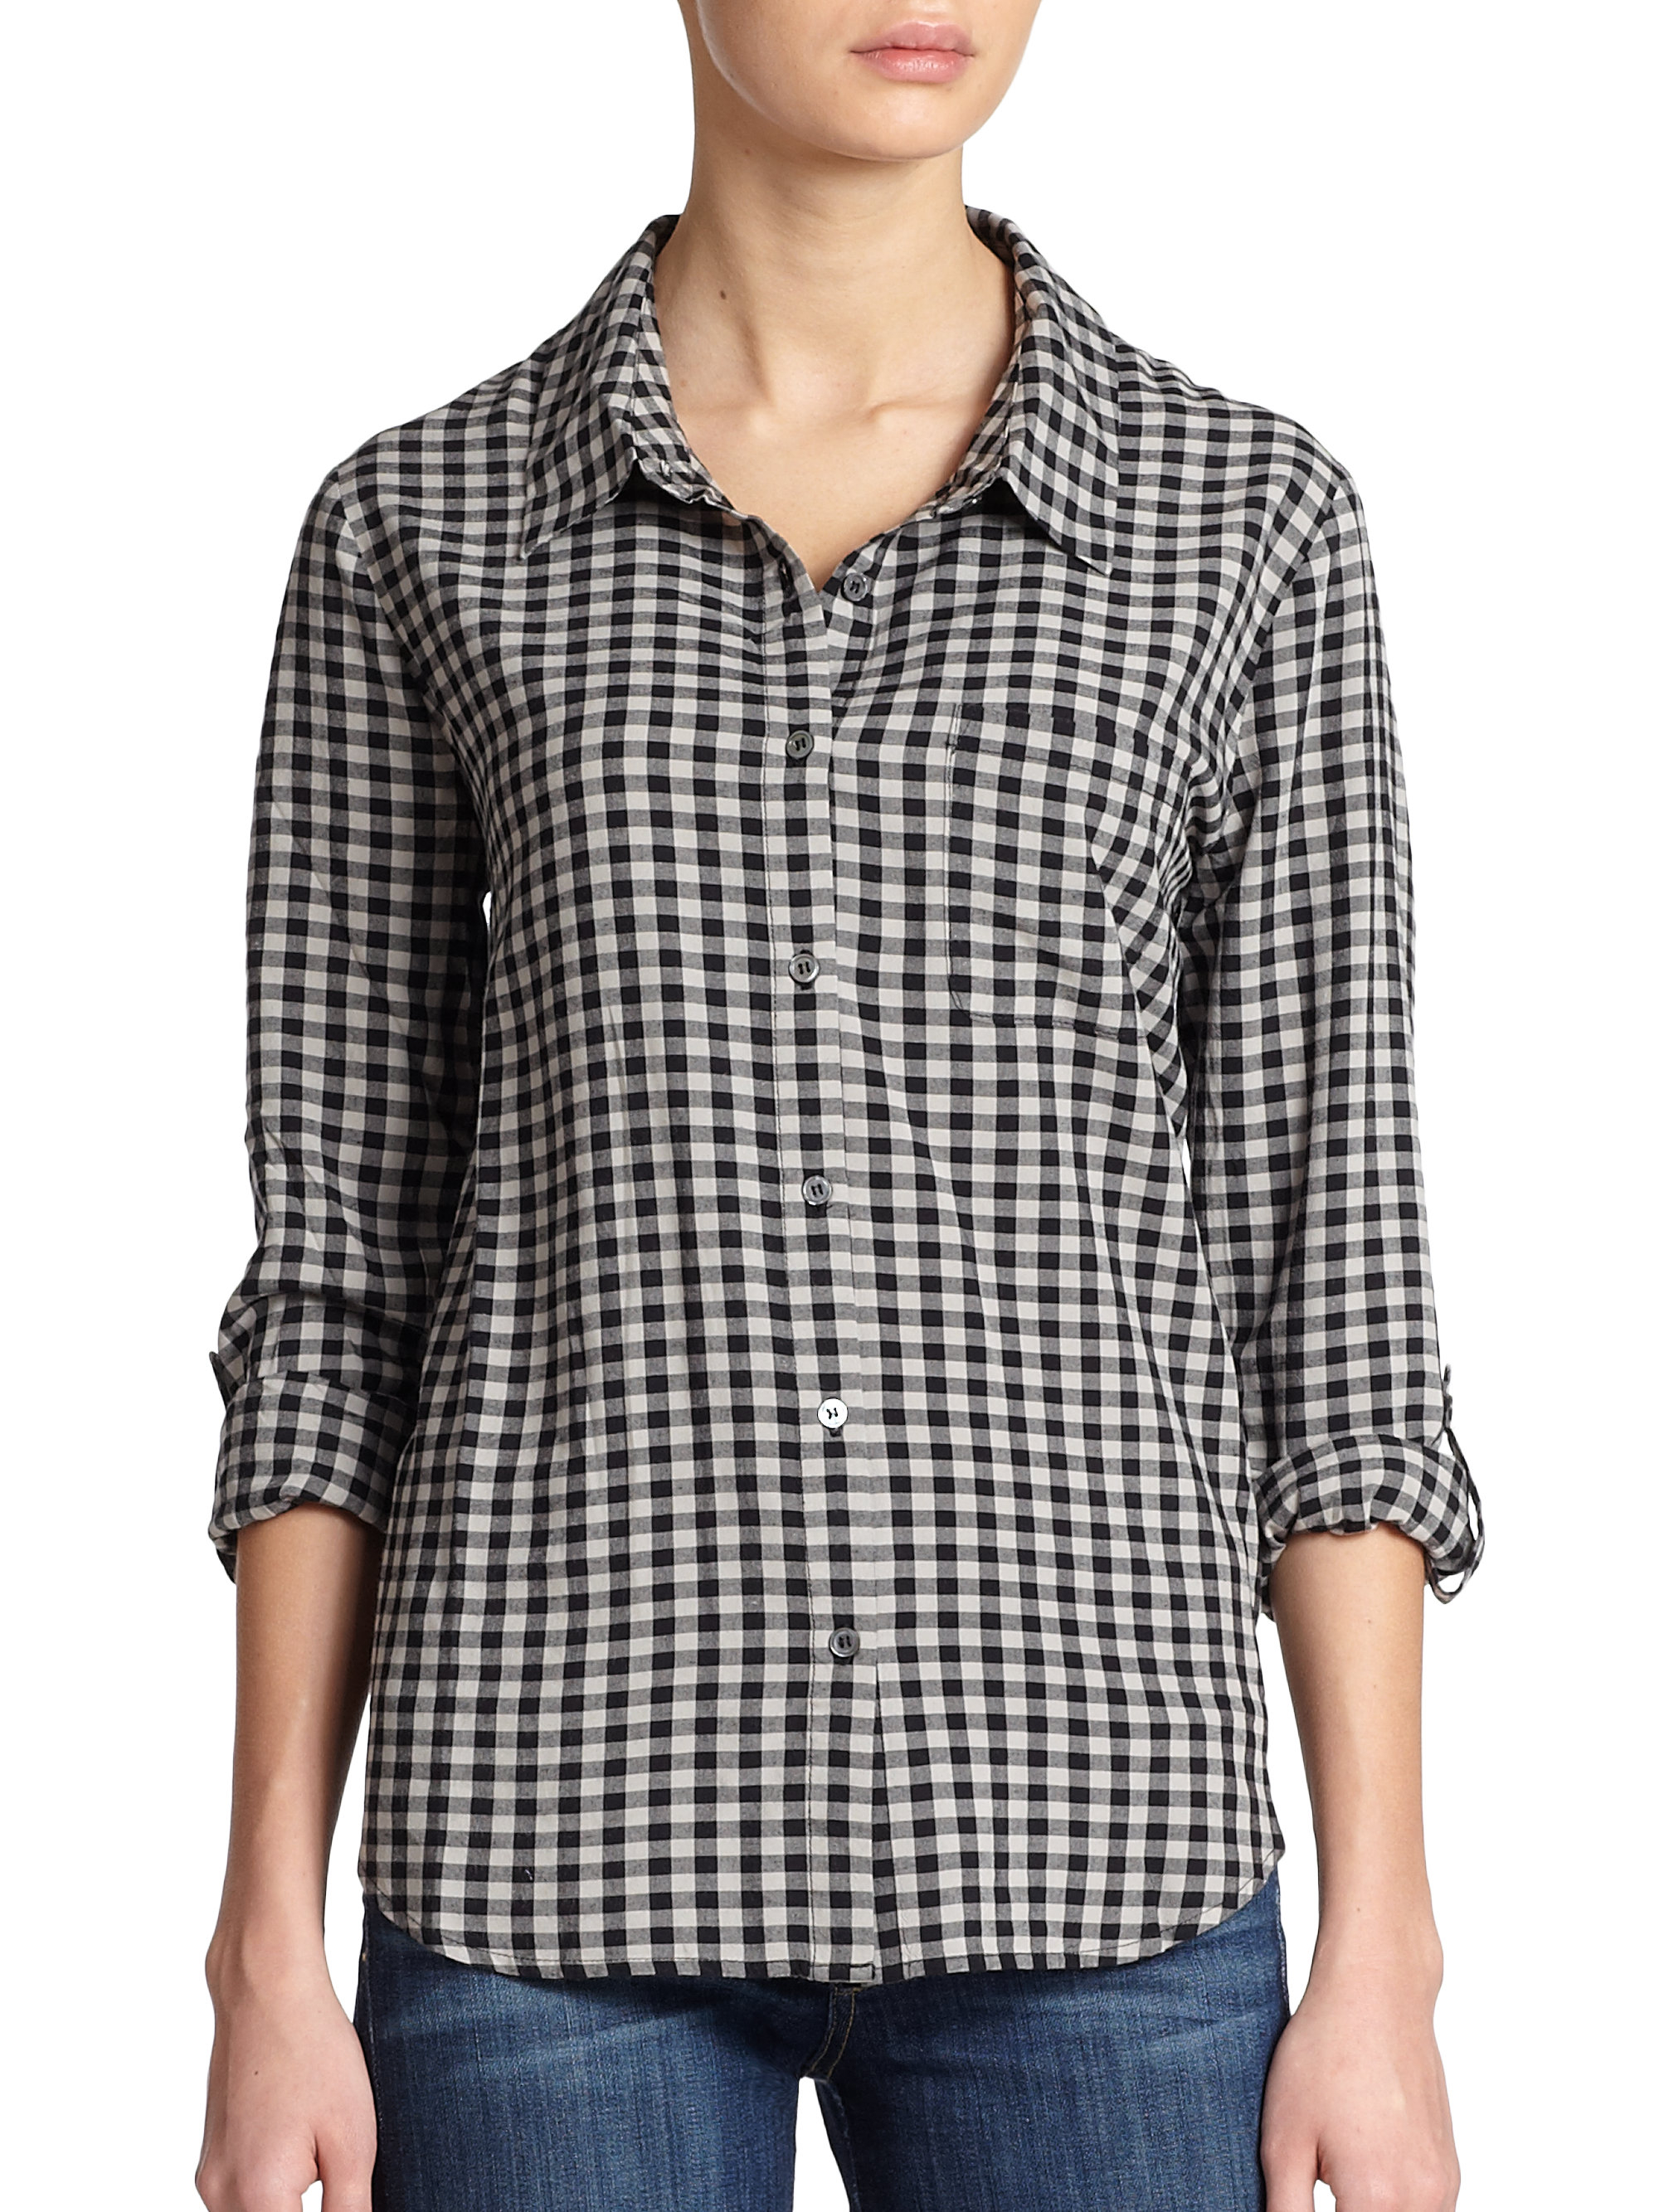 Lyst soft joie anabella plaid shirt in black for Soft joie plaid shirt